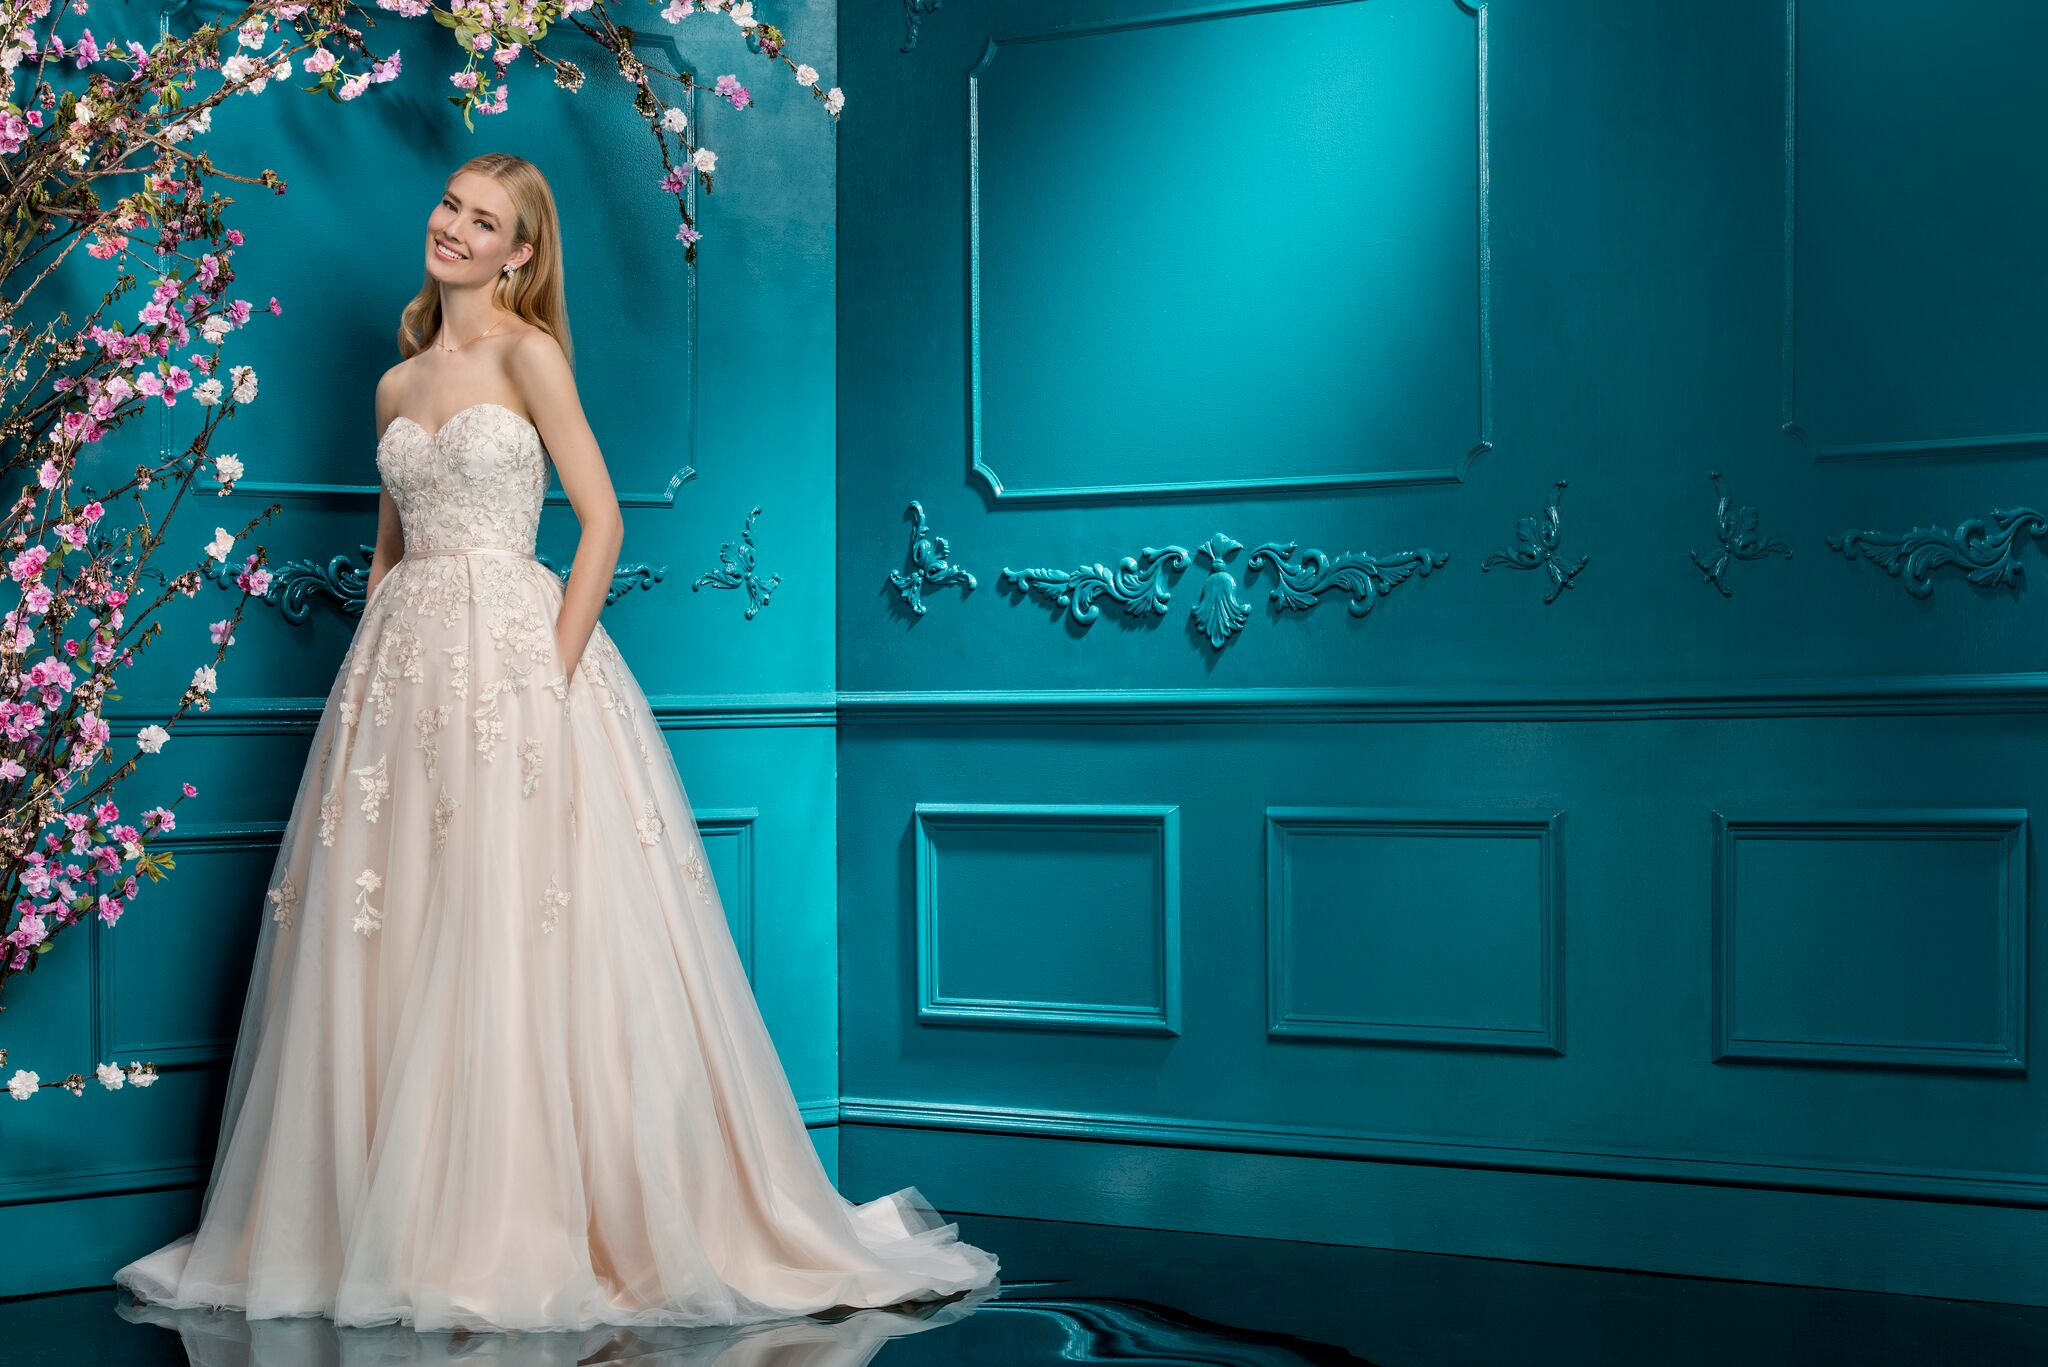 7f52ad093 Spotlight on… the breathtaking new Dusk Collection from Ellis Bridals! (Our  love affair continues, from Dusk 'til dawn…!)